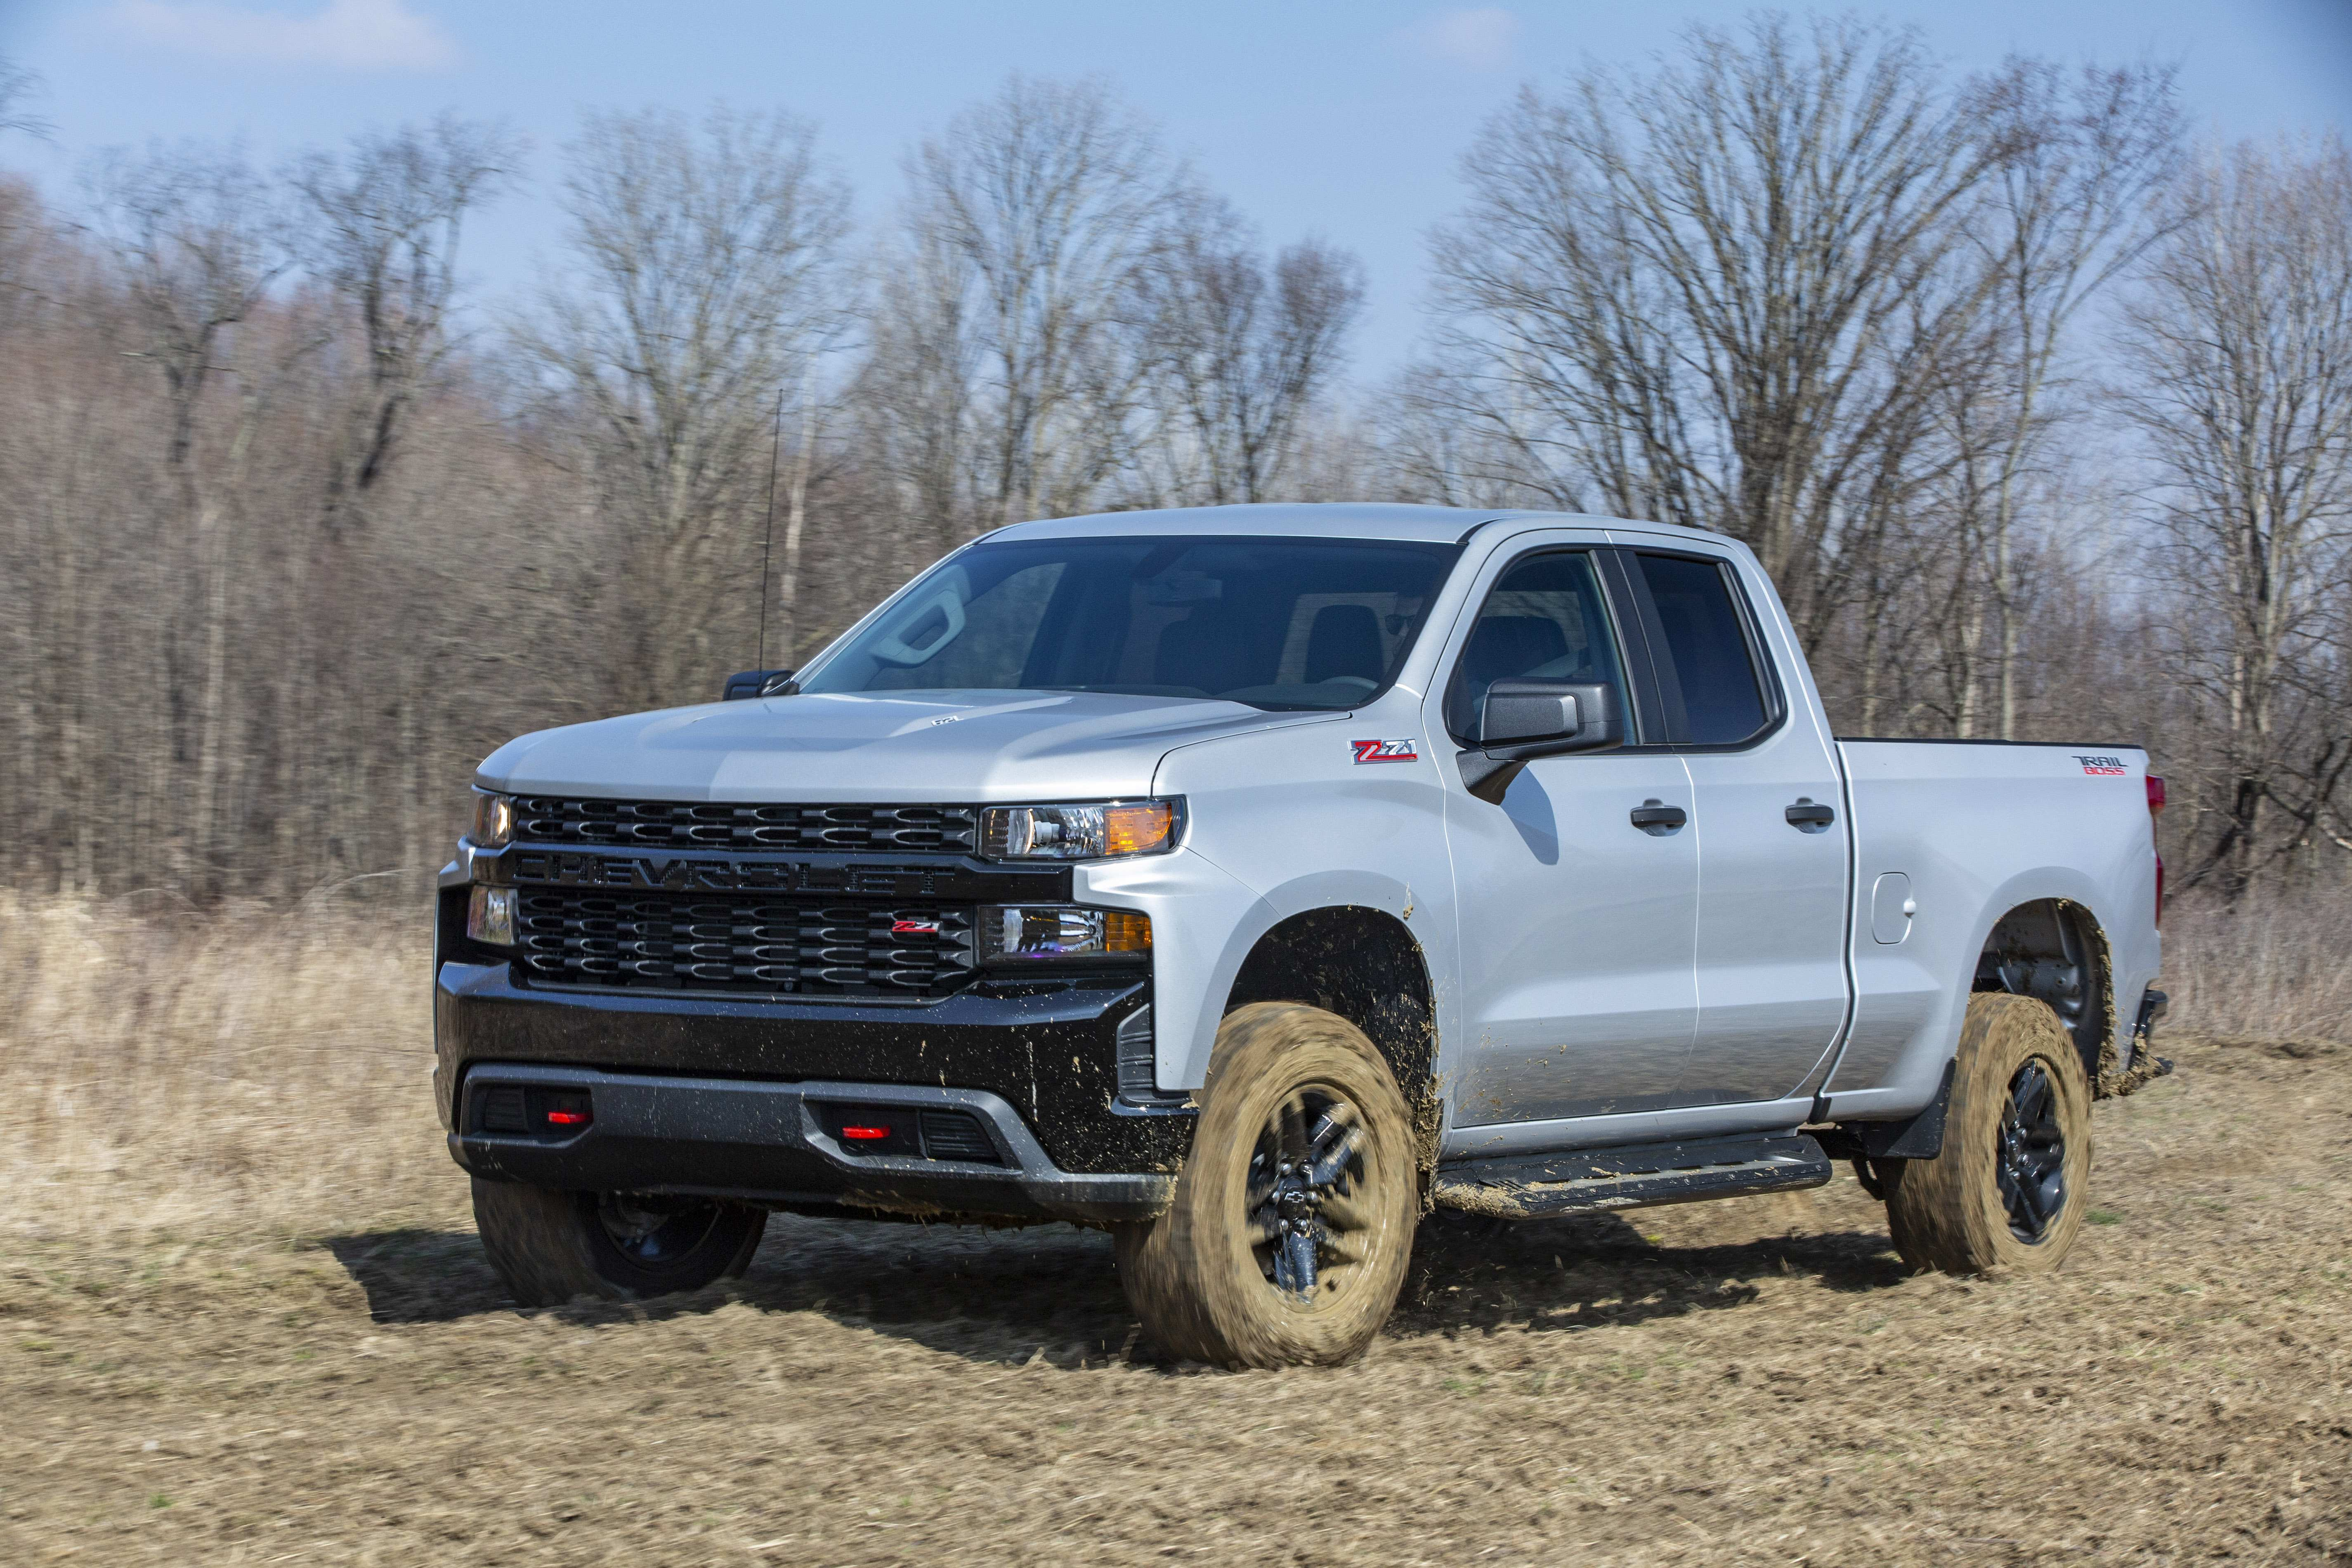 38 All New 2020 Chevrolet Lineup Images with 2020 Chevrolet Lineup